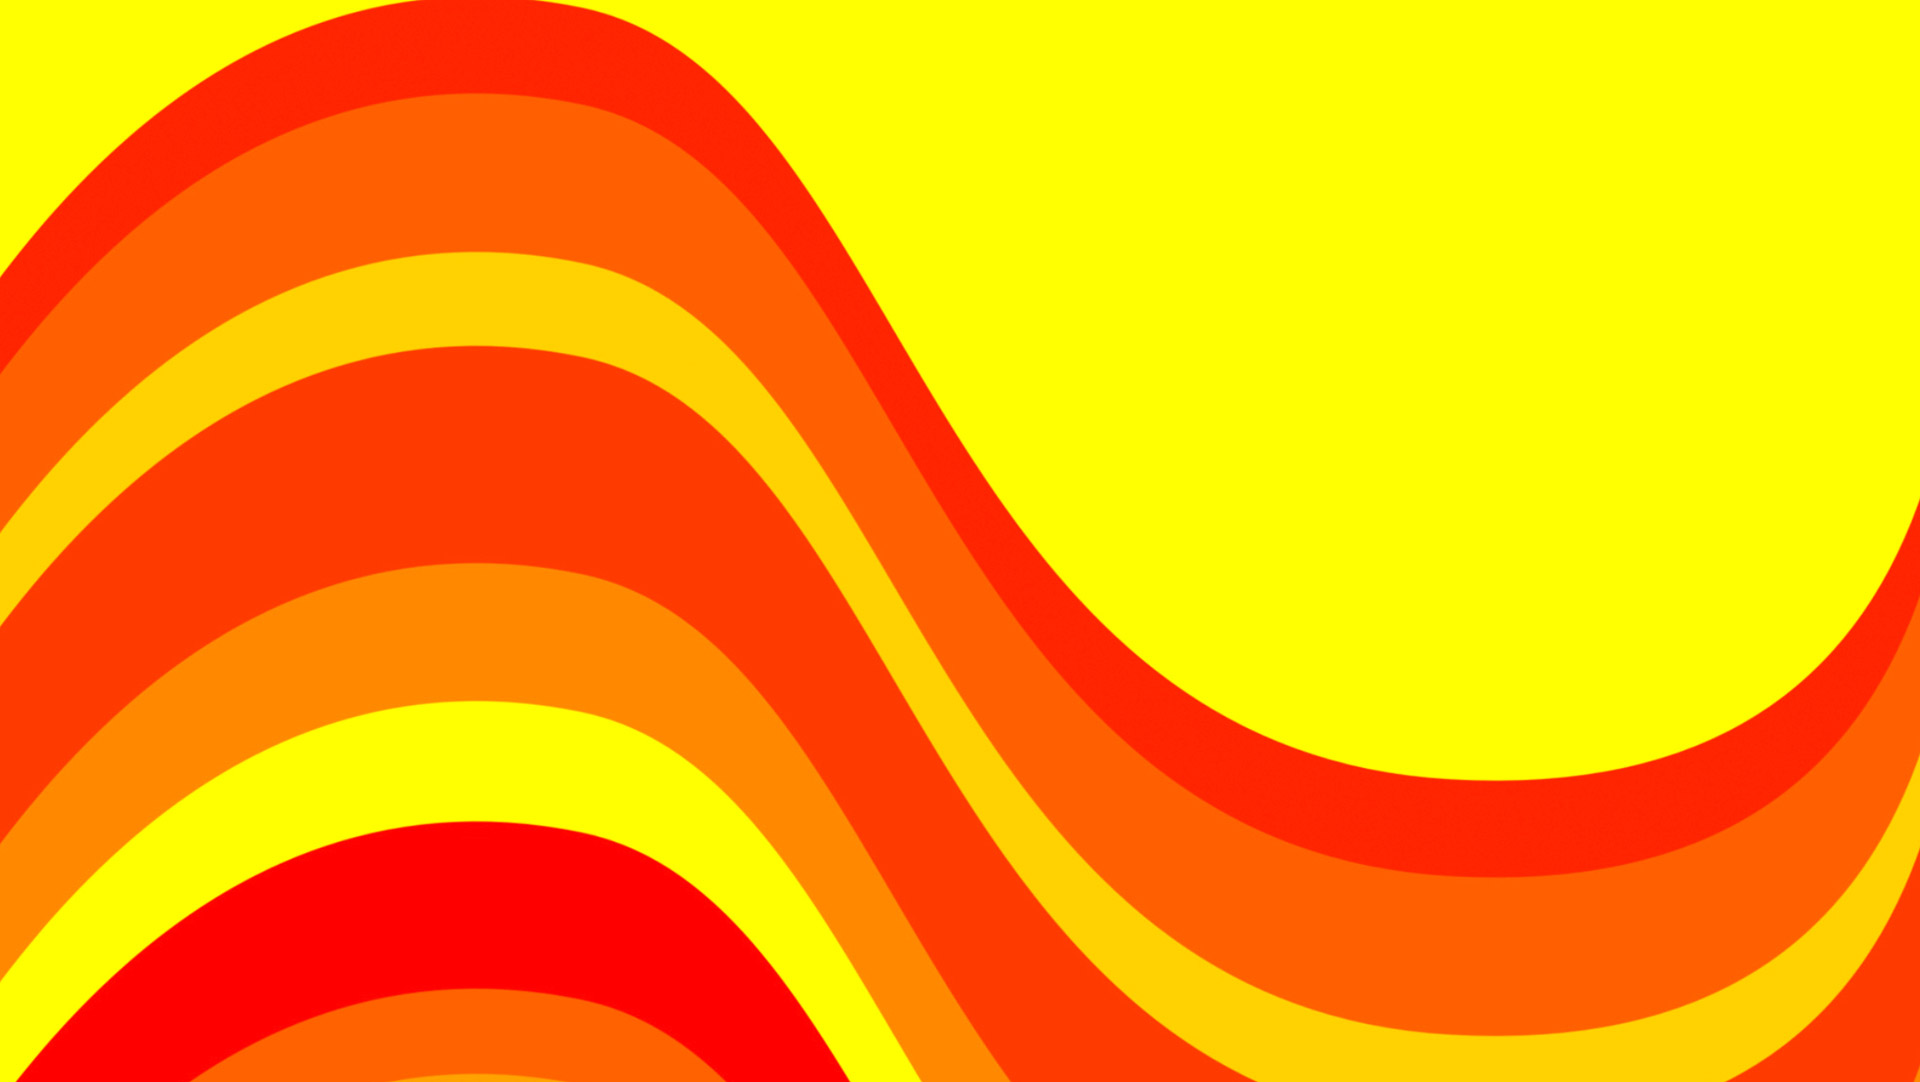 Red Orange Yellow Background Free Stock Photo  Public